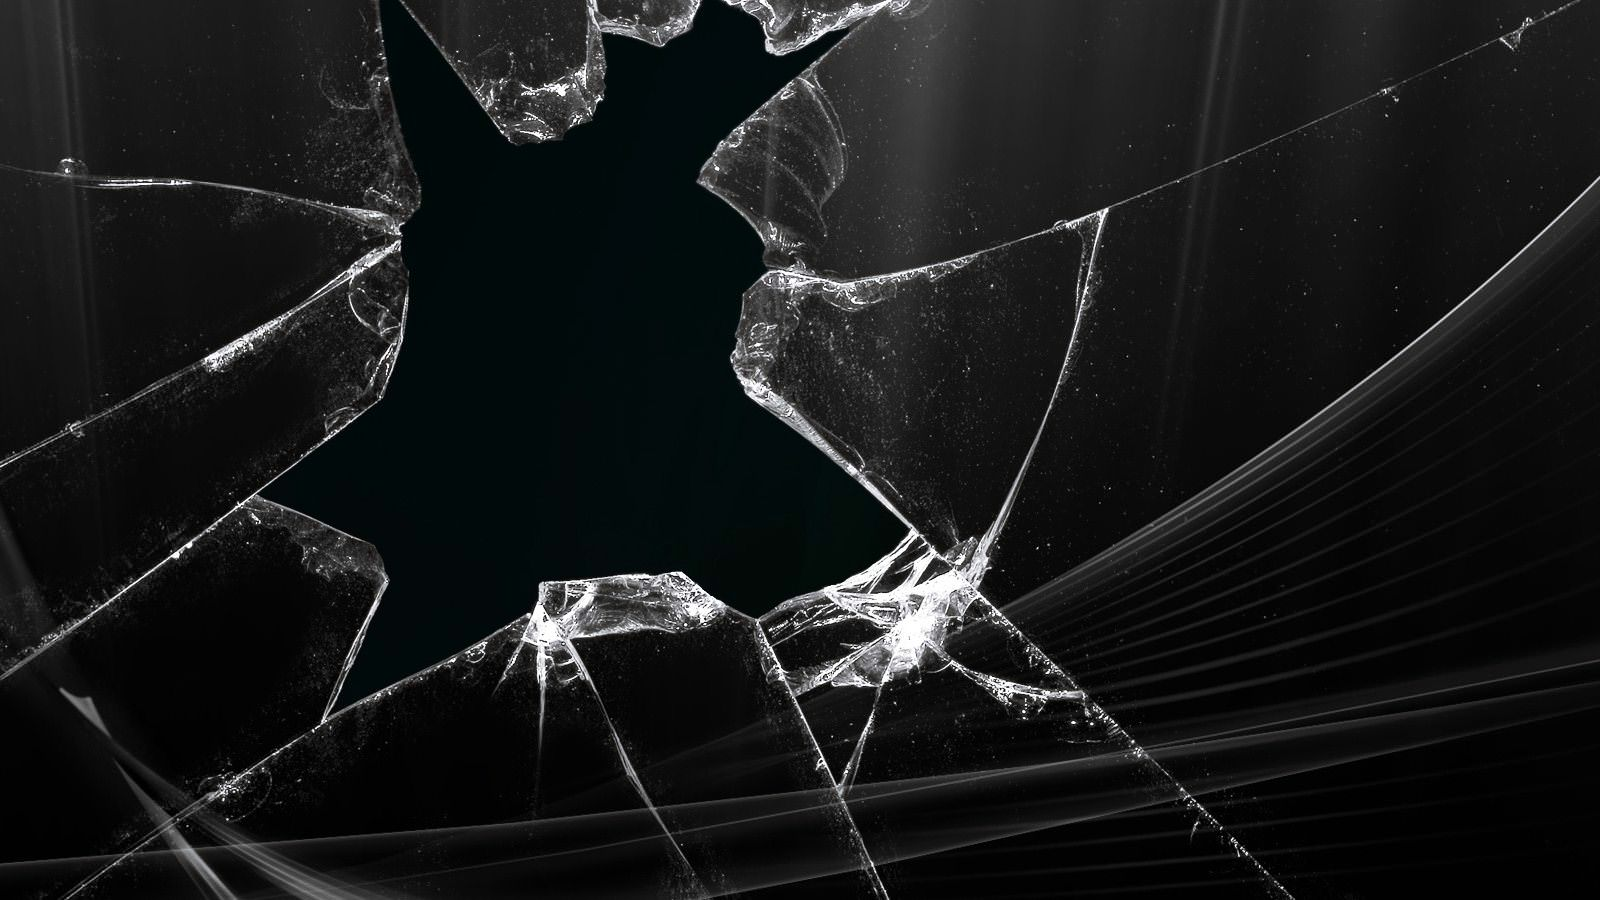 Technology Cracked Screen Wallpaper